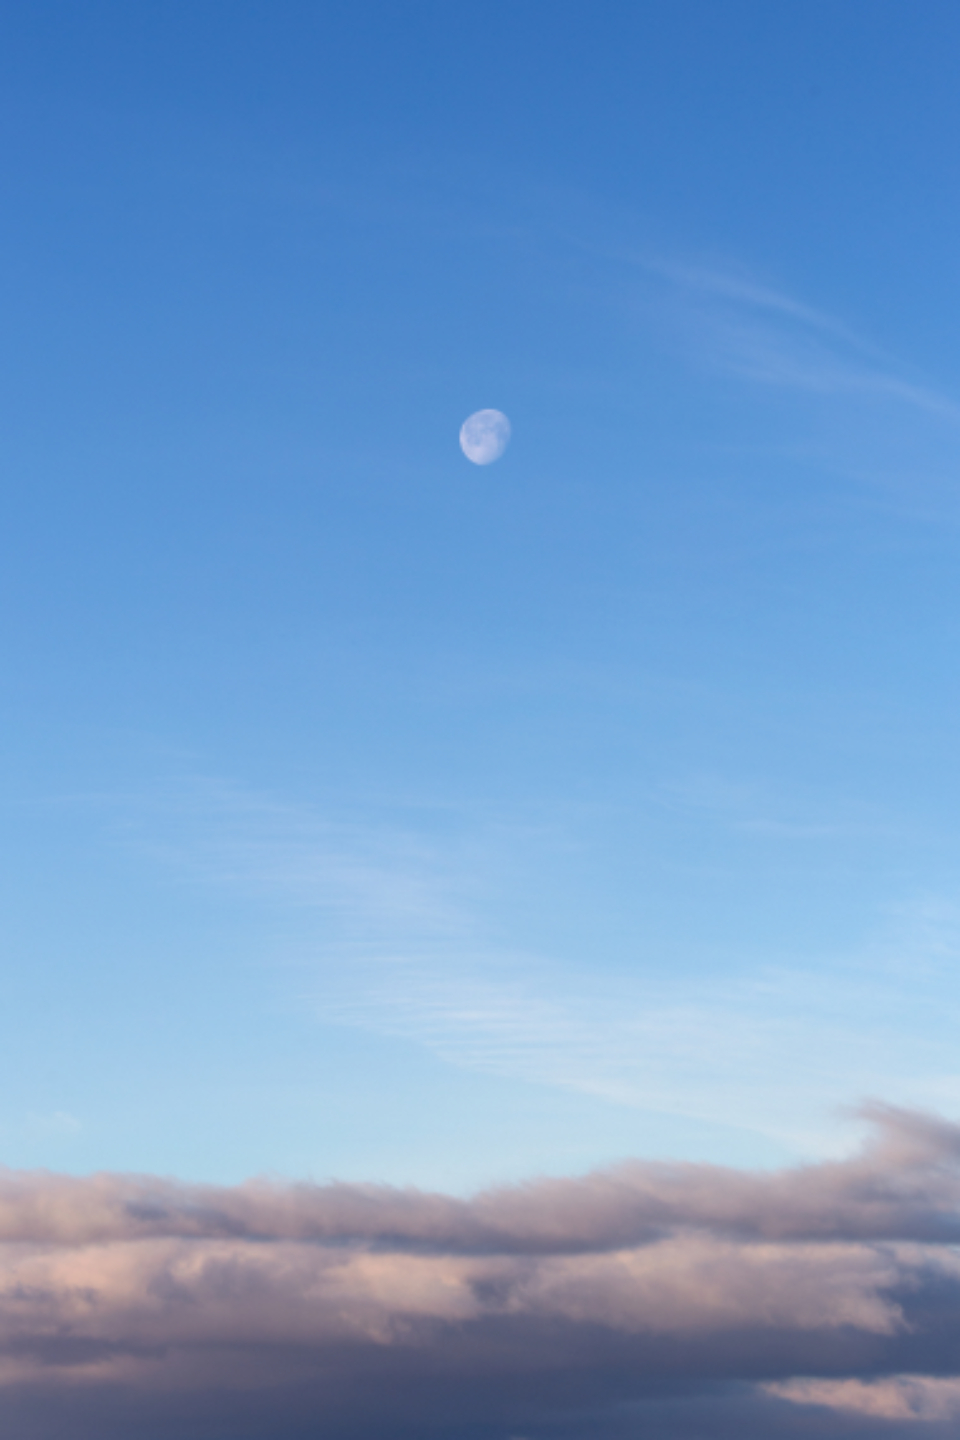 daytime moon clouds sky nature outdoors space climate environment